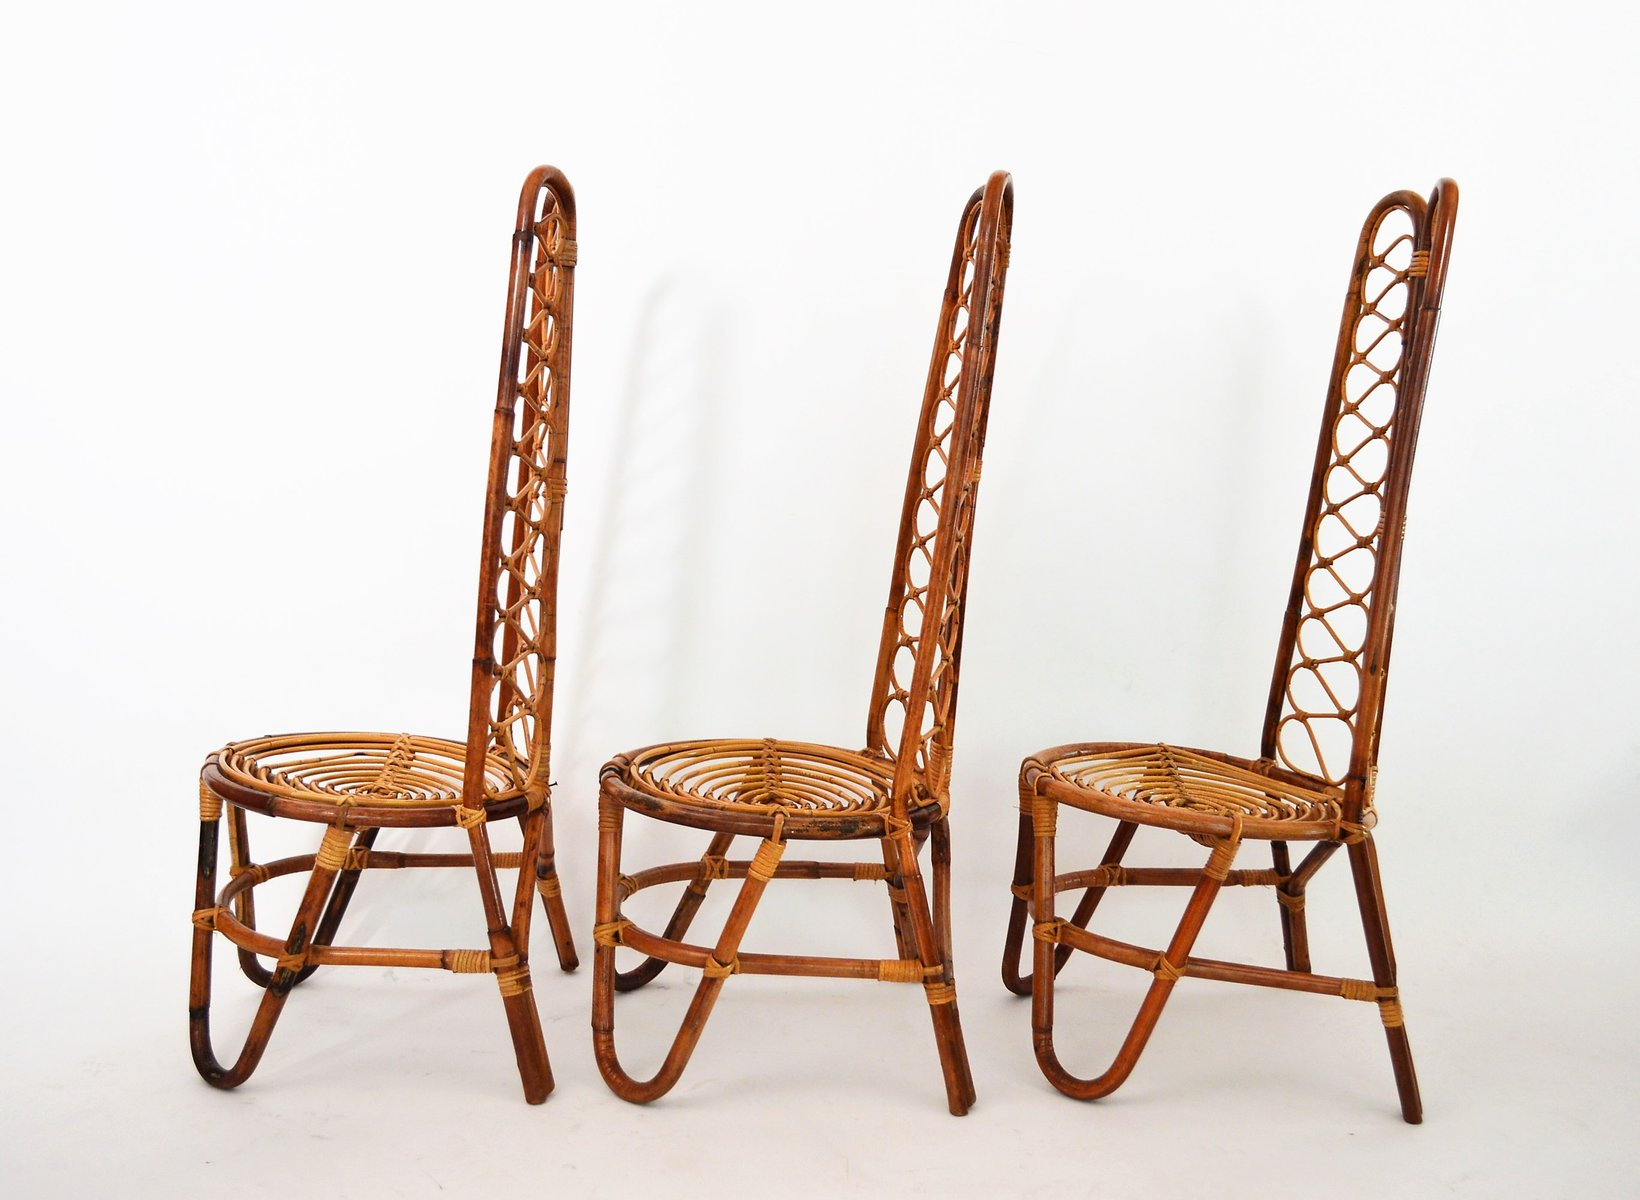 Mid Century Bamboo Chairs 1975 Set of 6 for sale at Pamono